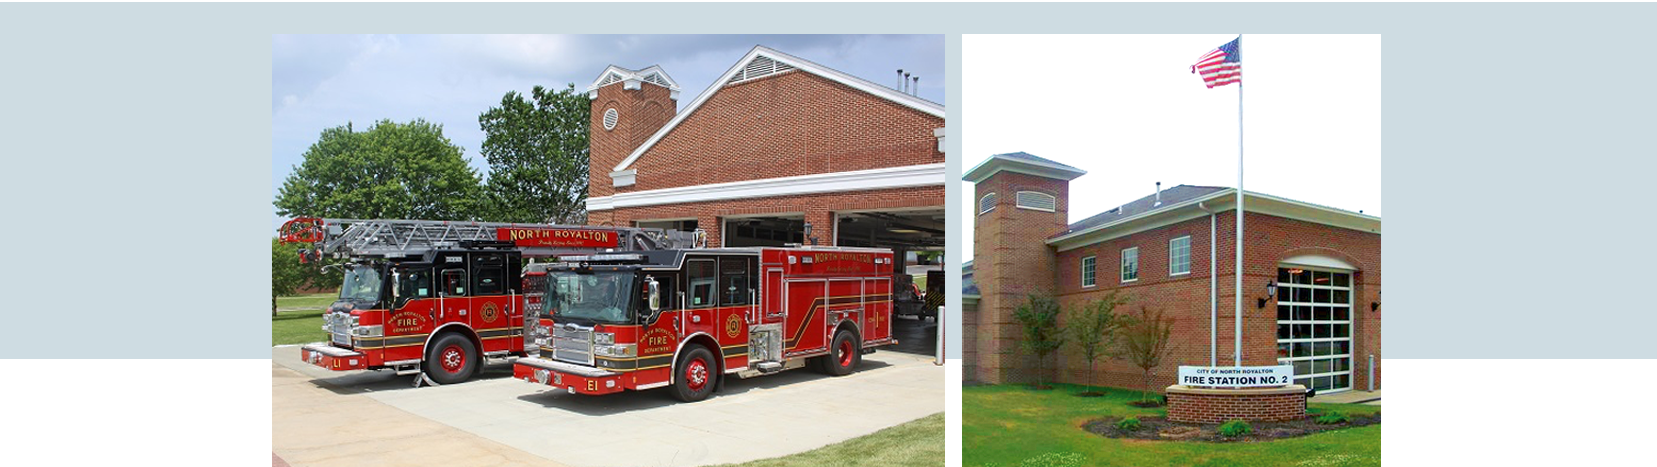 north_royalton_fd